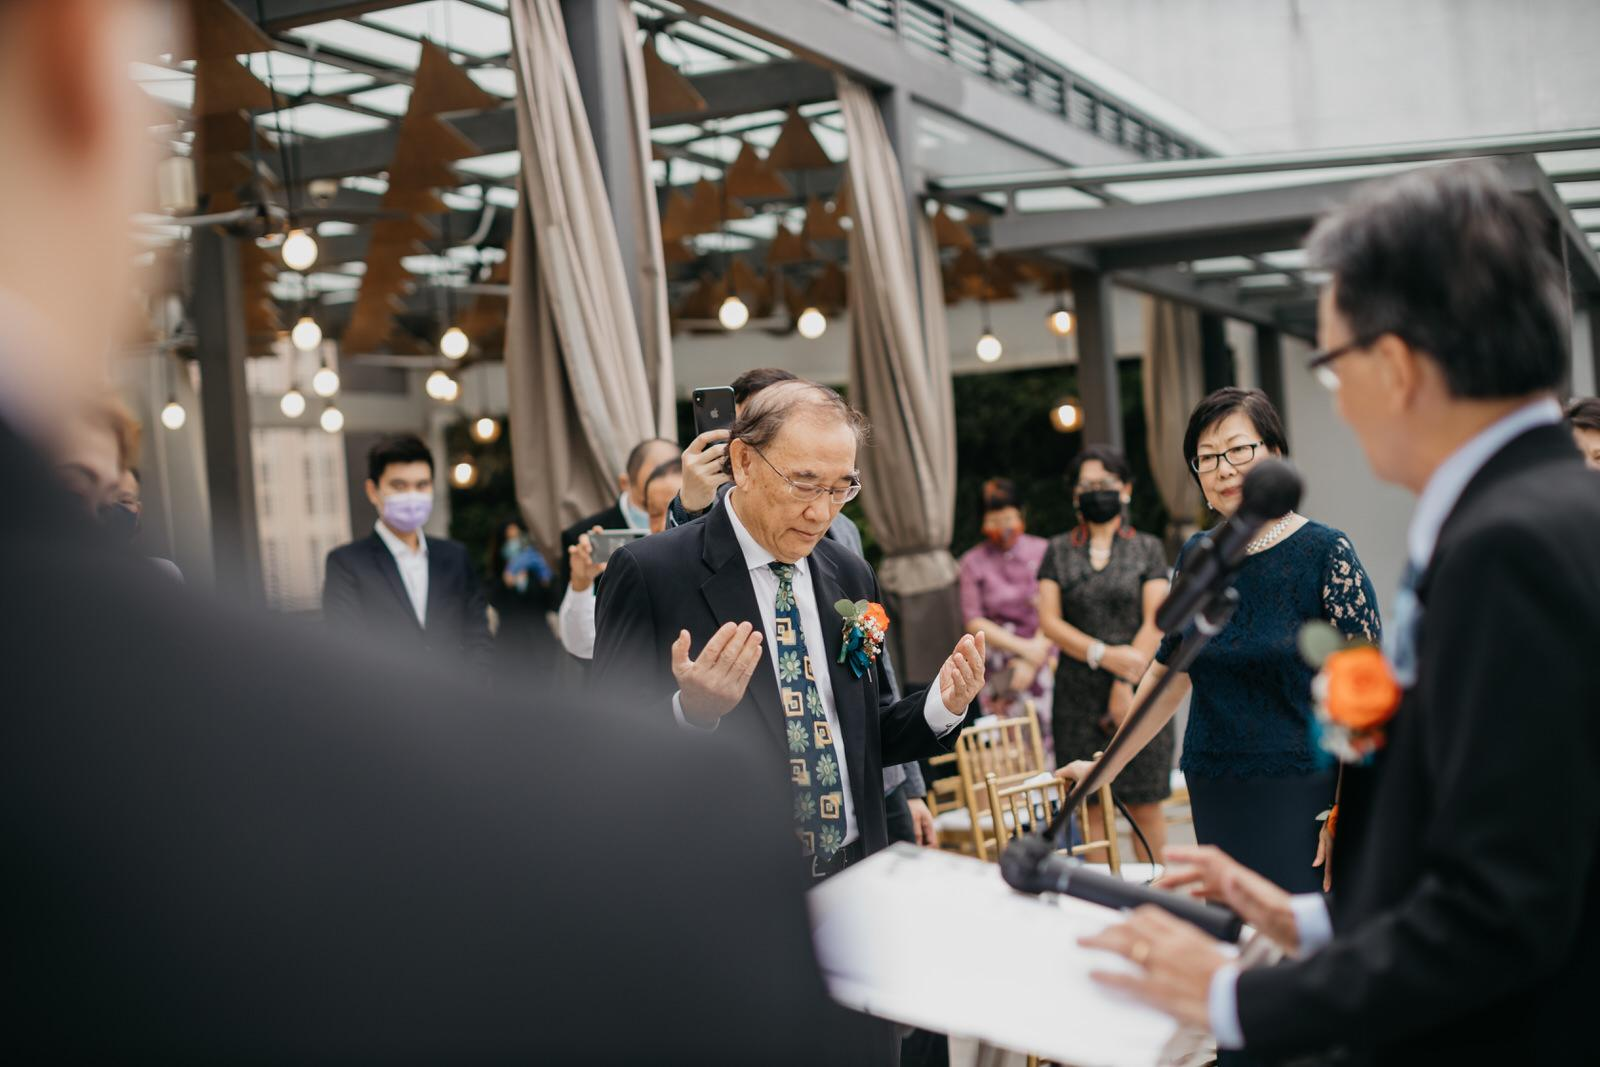 Prayer Christian Wedding Ceremony Father & Bride March In Boho Deco Rooftop Poolside Wedding at Hotel Stripes Kuala Lumpur MCO2.0 Cliff Choong Photography Malaysia Covid19 ROM